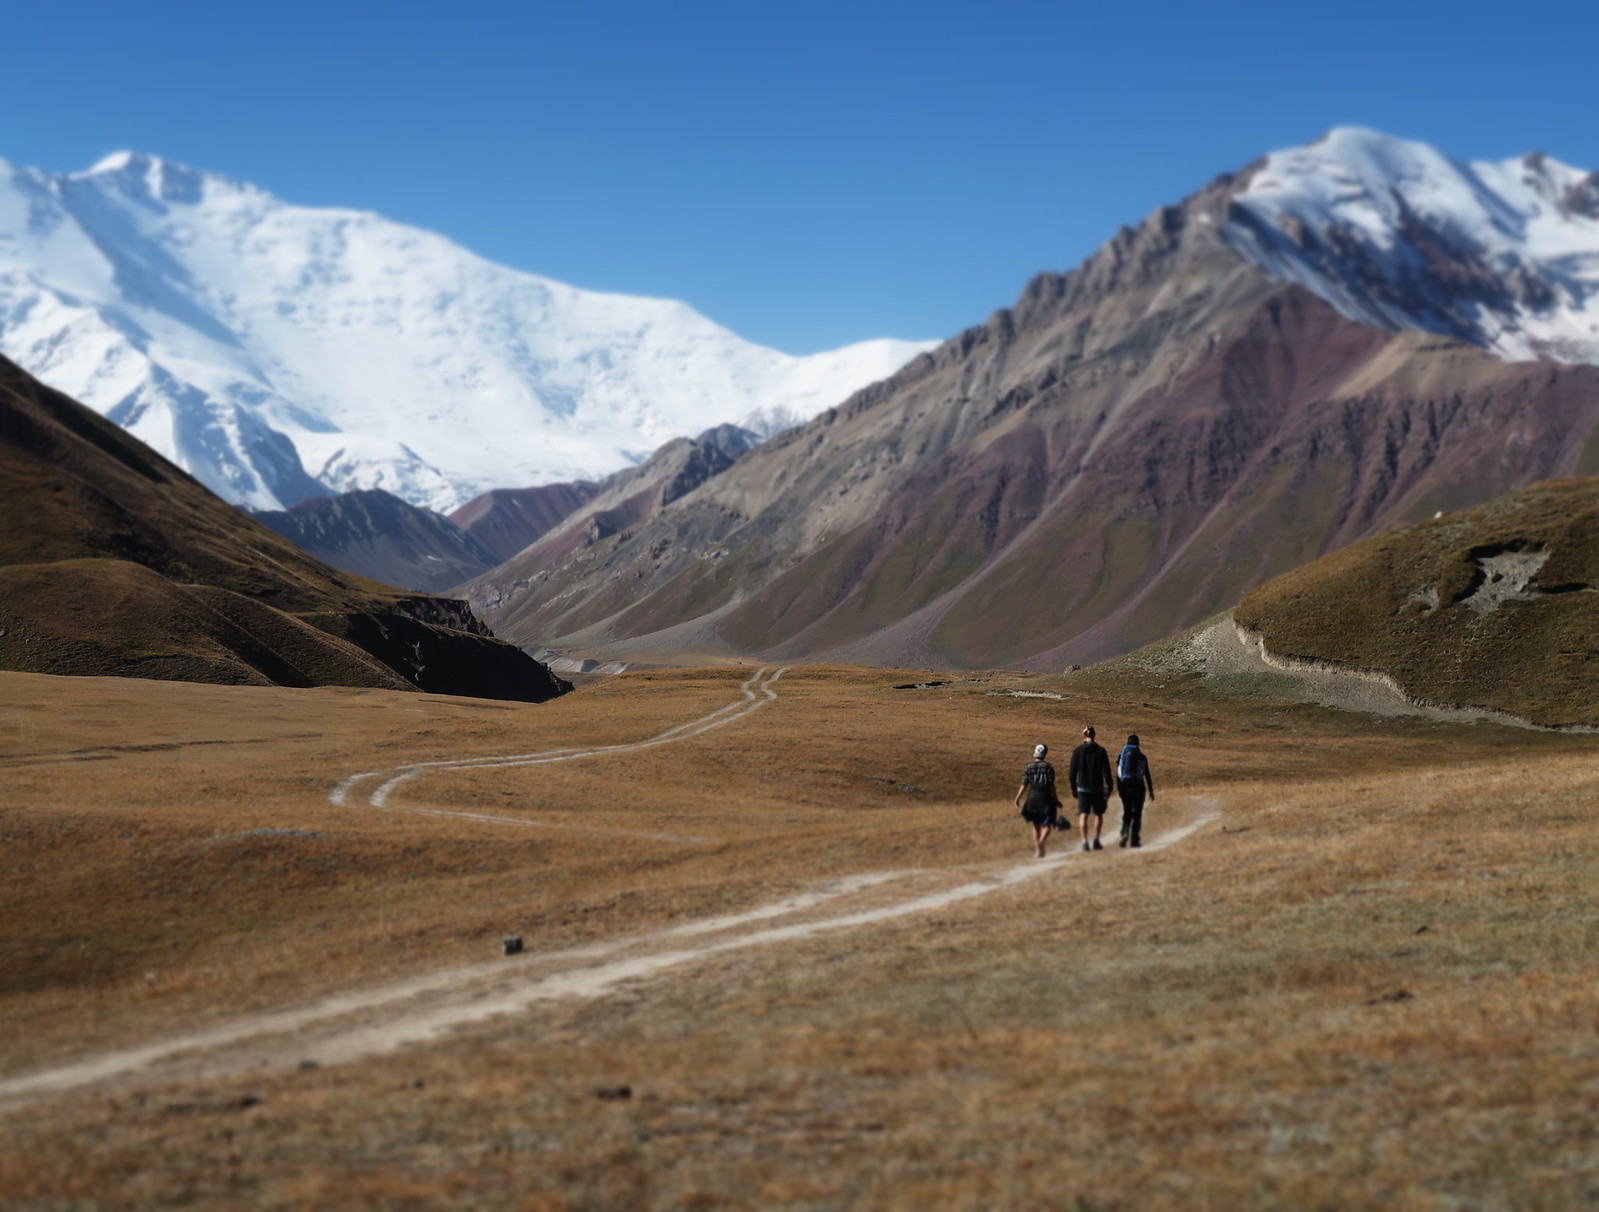 Kyrgyzstan – a little detour to a big mountain